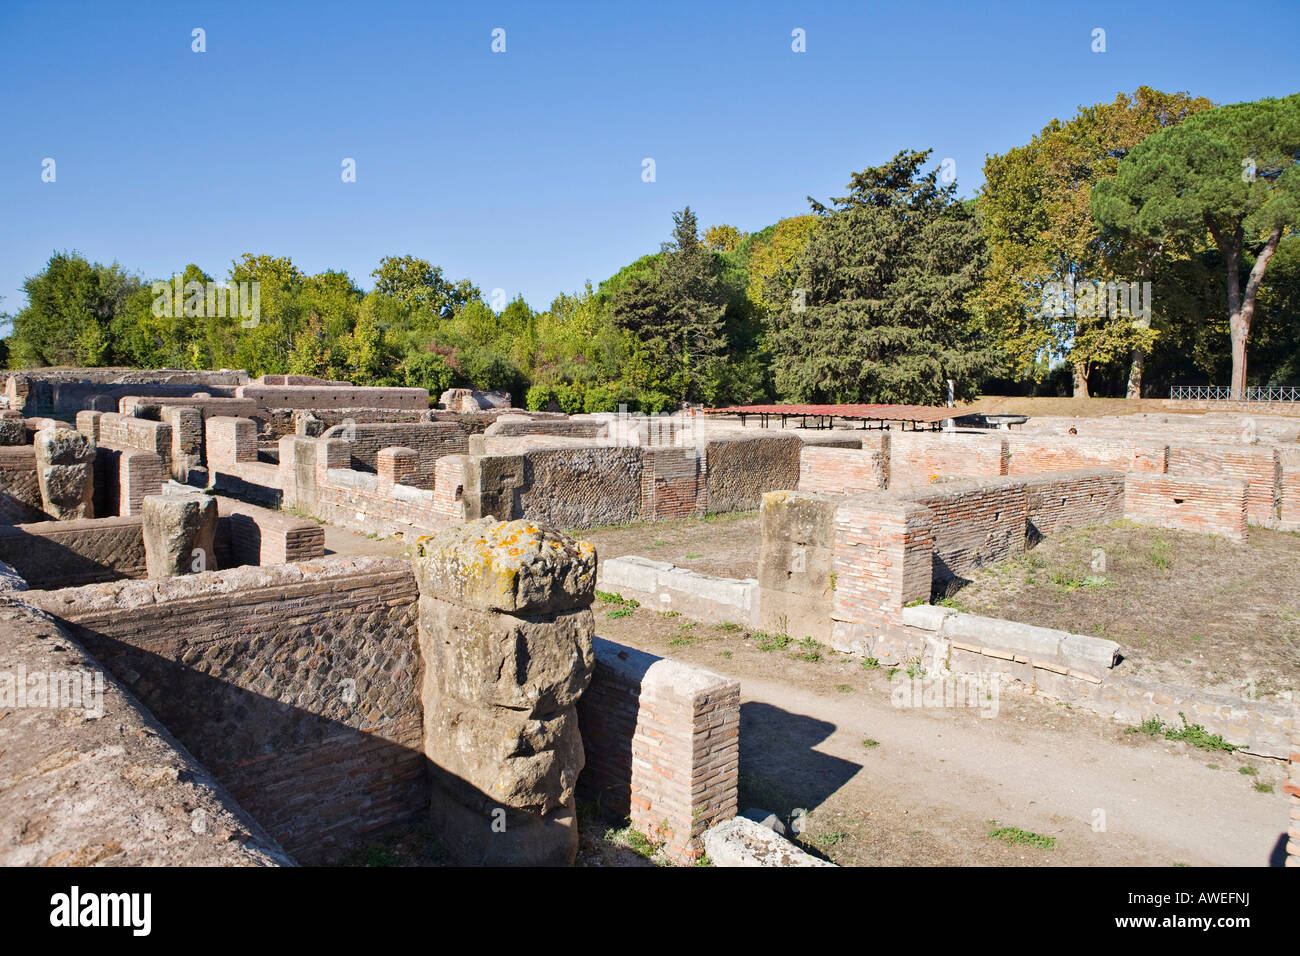 dating sites in rome italy Basilicas dating from the christian antiquity include the most important fascist site in rome is the as the capital of italy, rome hosts all the.